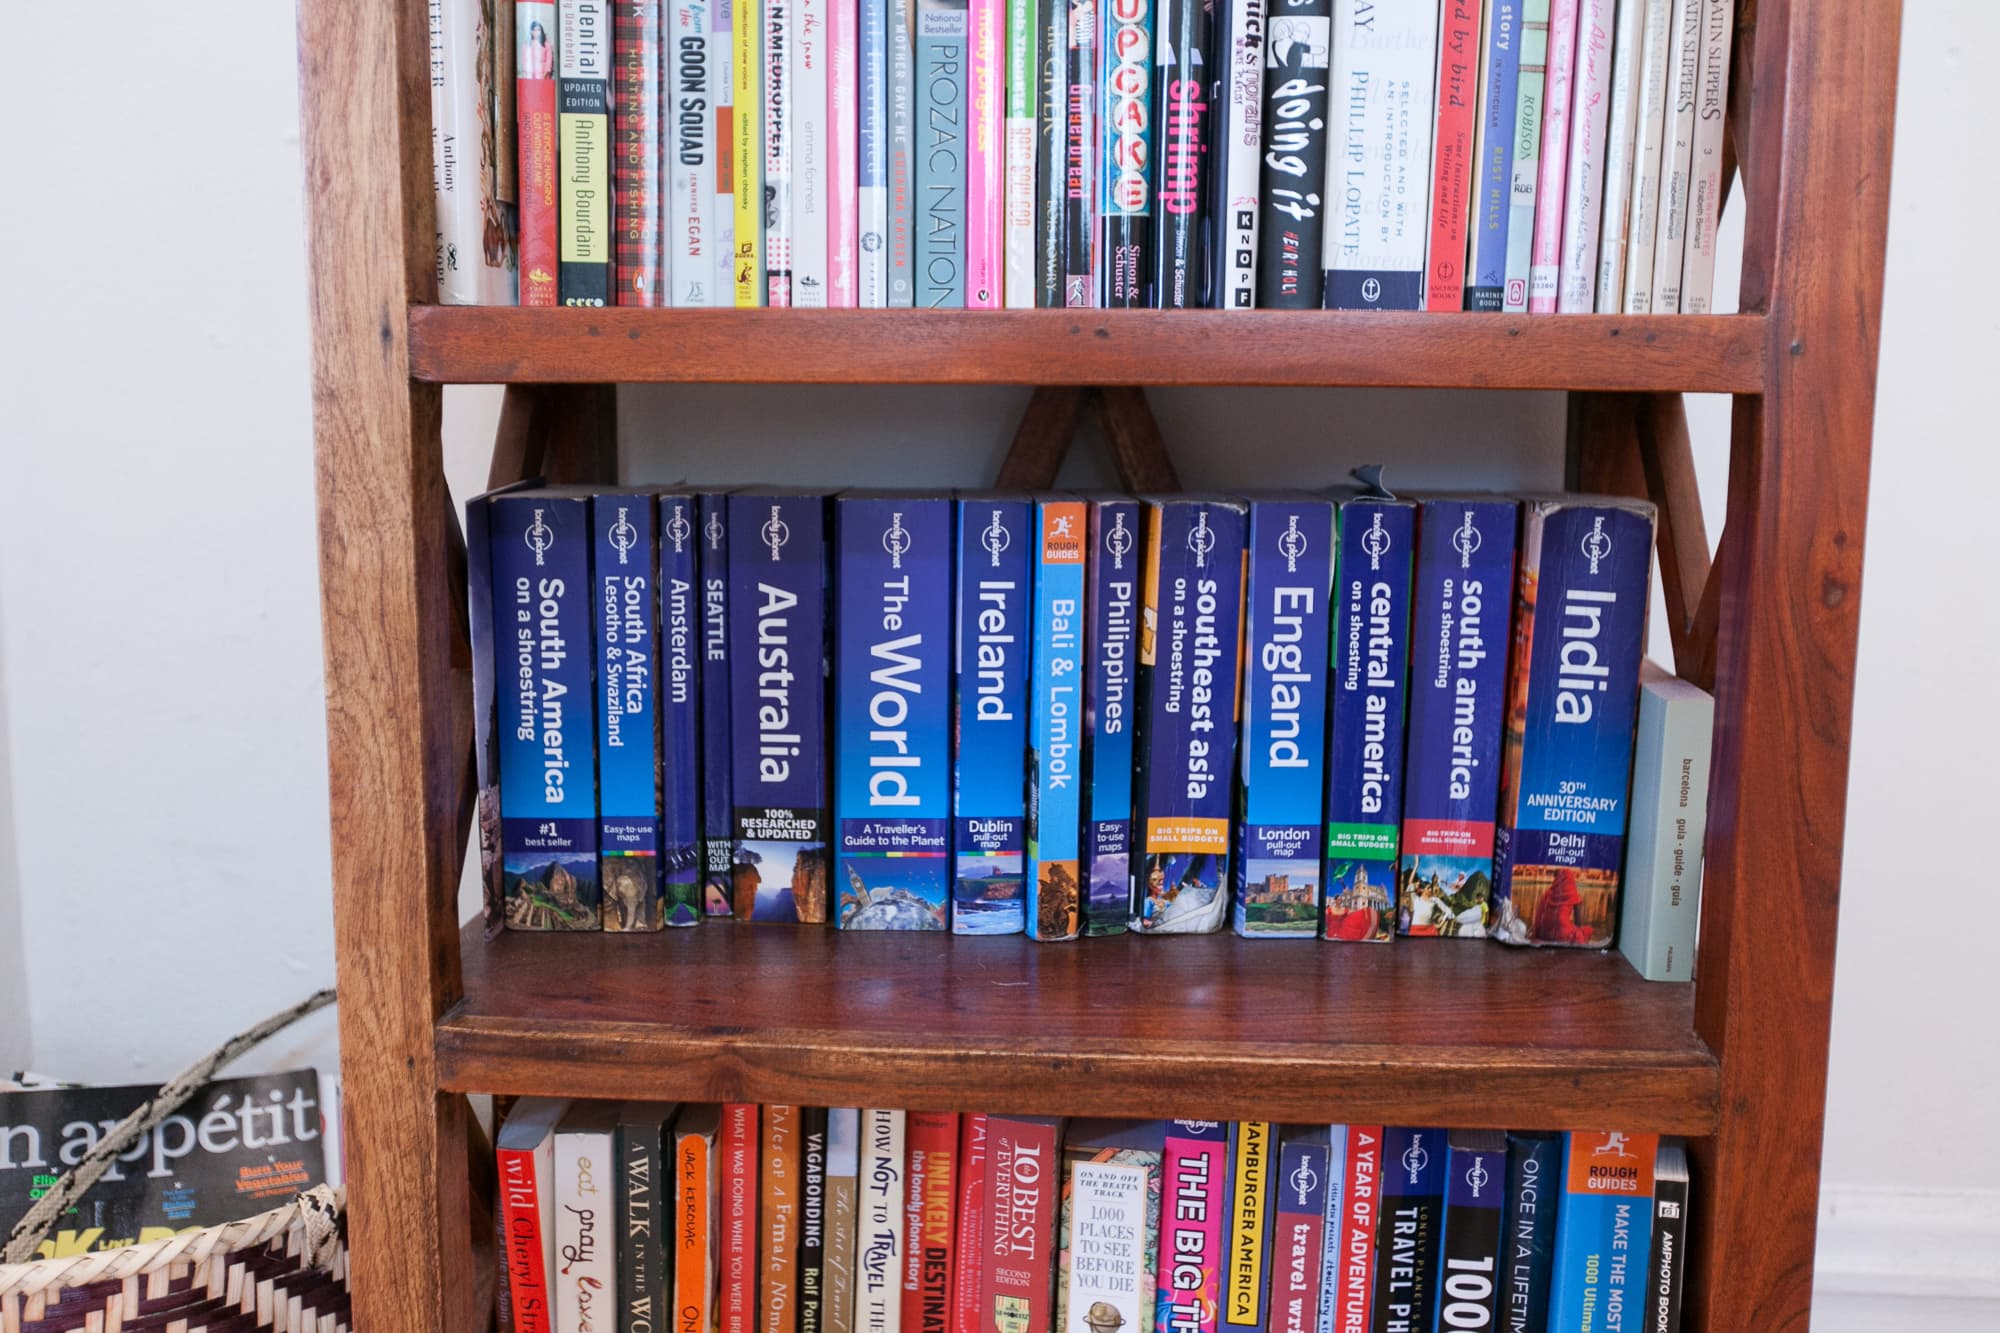 My collection of Lonely Planet guidebooks.